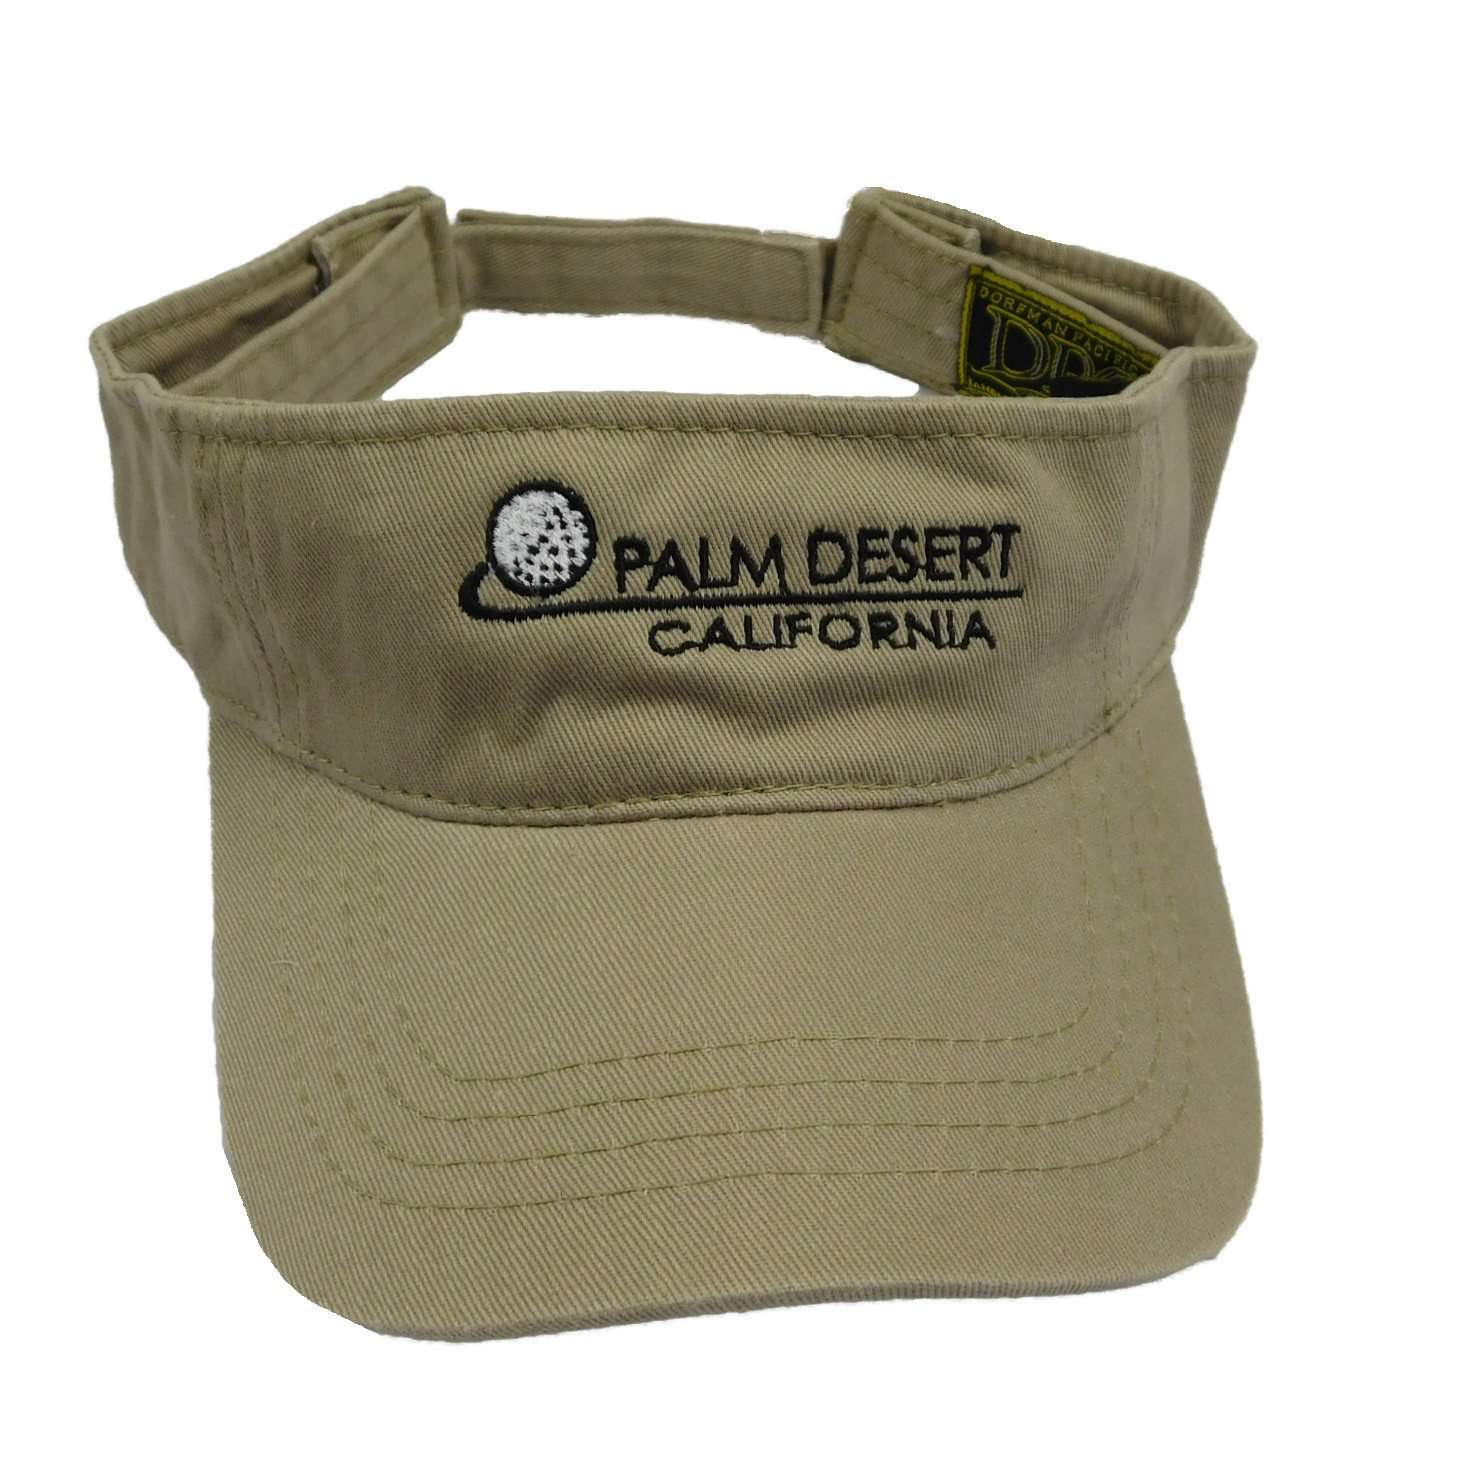 Sun visors if you cannot stand wearing a hat check out these dpc mens sun visor with palm desrt embroidery setartrading hats ccuart Images